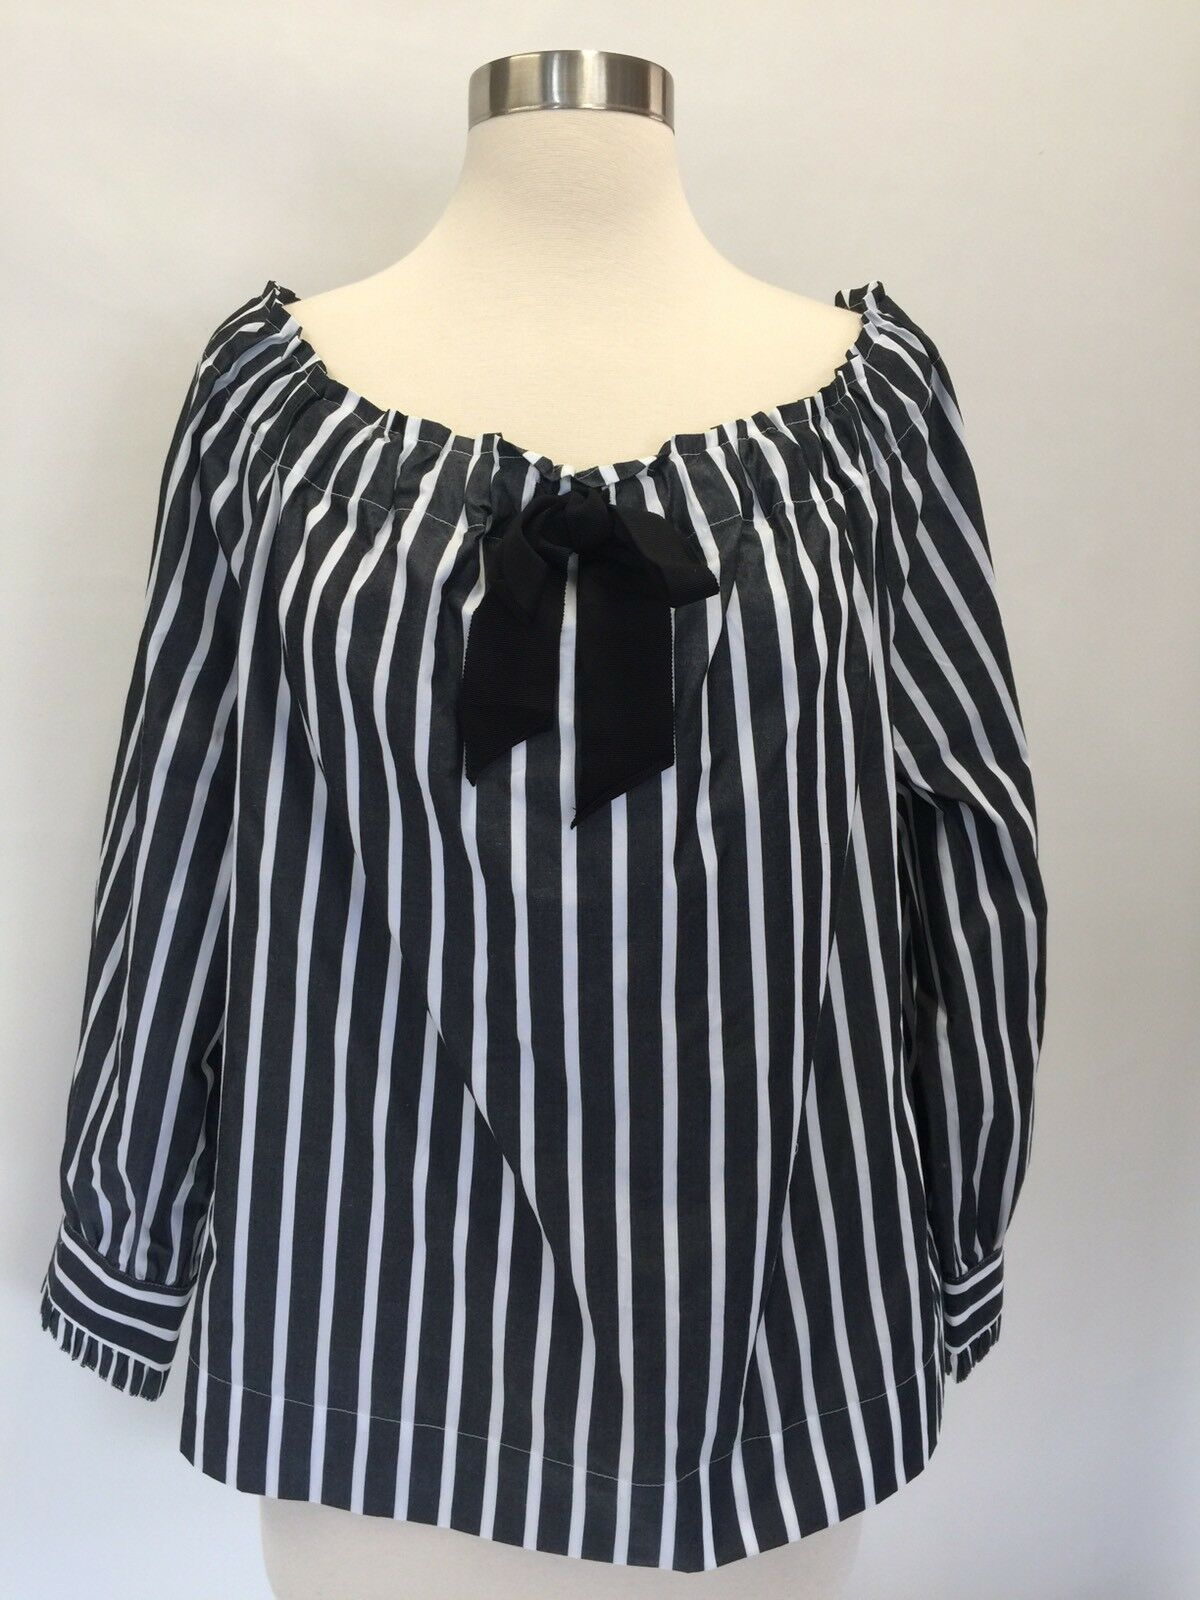 NWT J.CREW schwarz Weiß Off-the-Shoulder Striped Top With Bow Blouse Größe M G9945